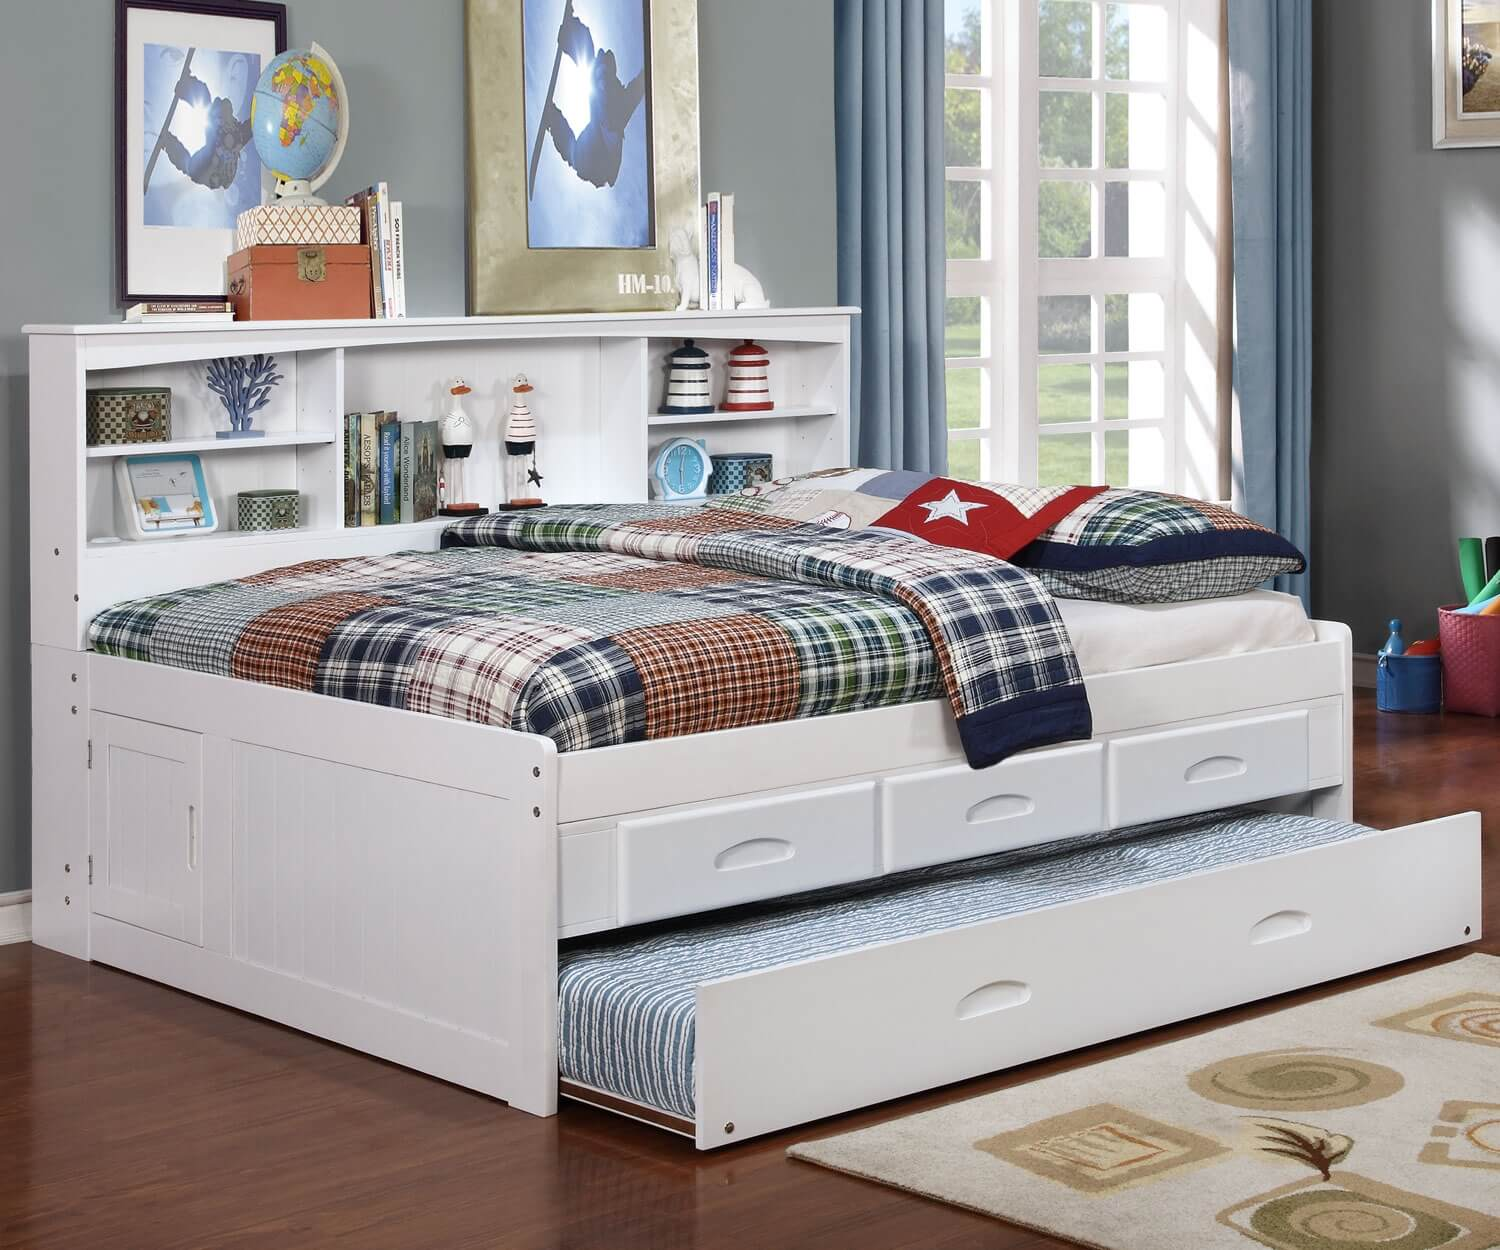 trundle what affordable a best decor bed beds is twin modern home option are